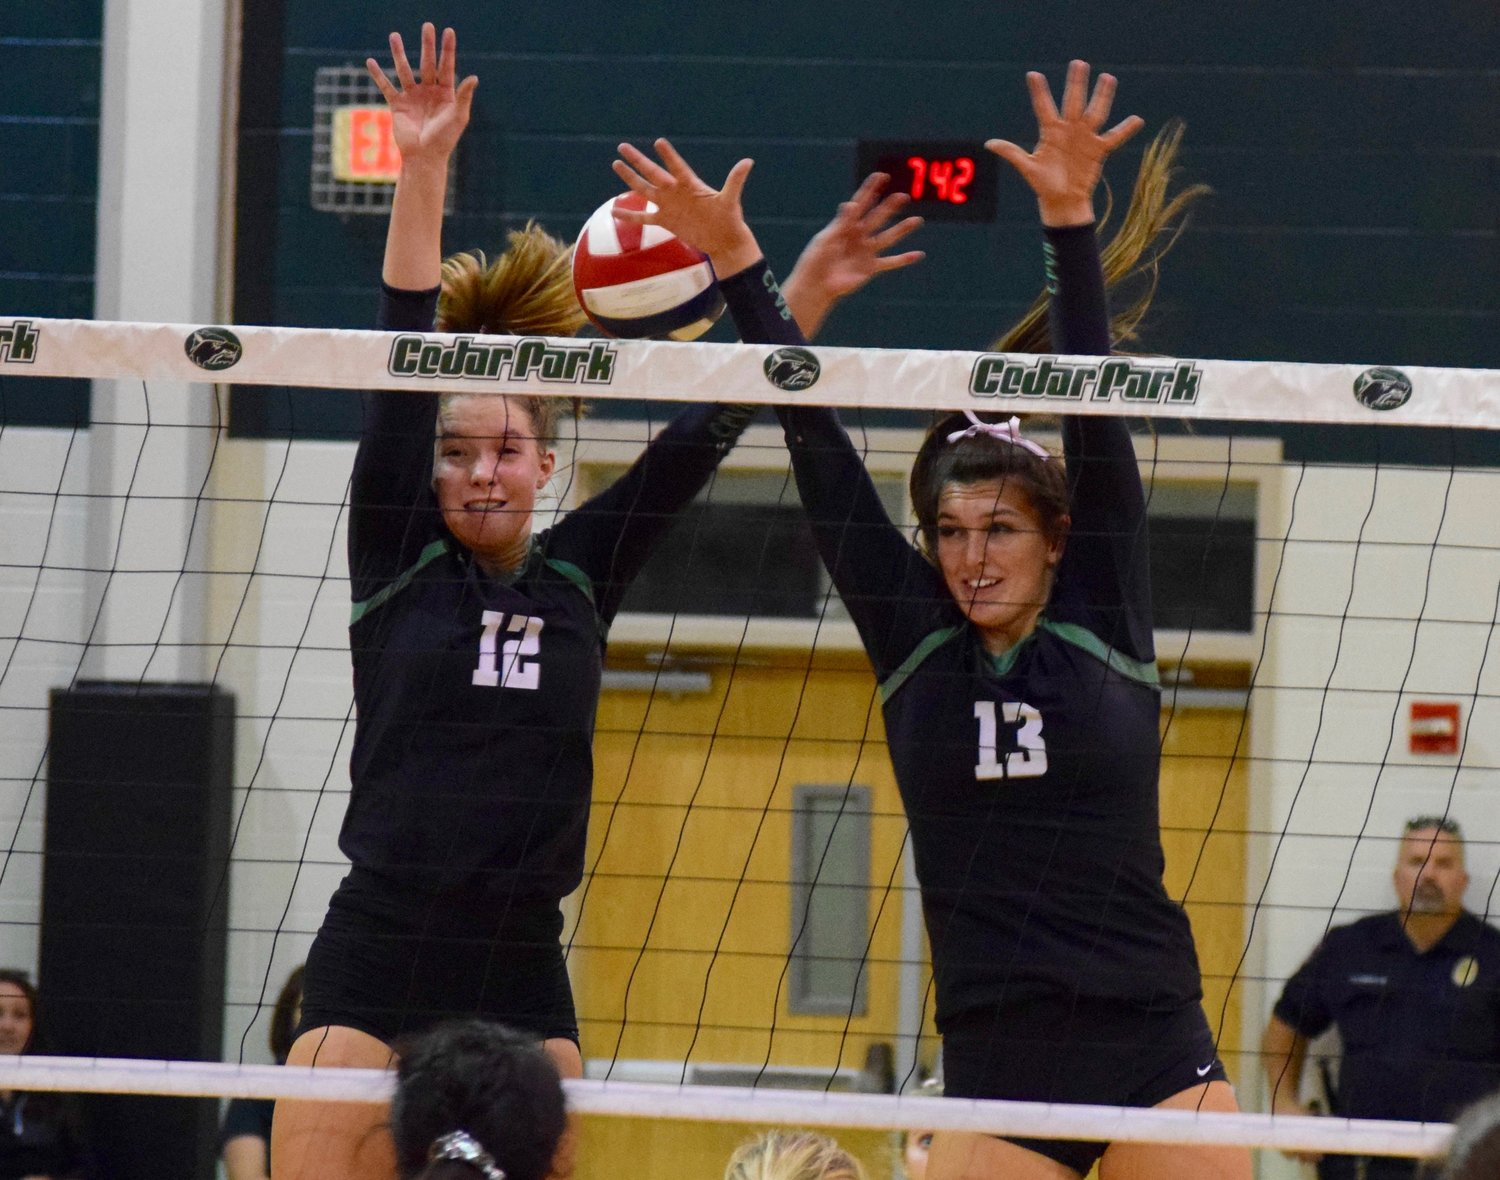 Olivia Meyer, left, Shelby Epley and Cedar Park swept Glenn 3-0 (25-16, 25-10, 25-14) Tuesday night in the first game of the second round of district play.